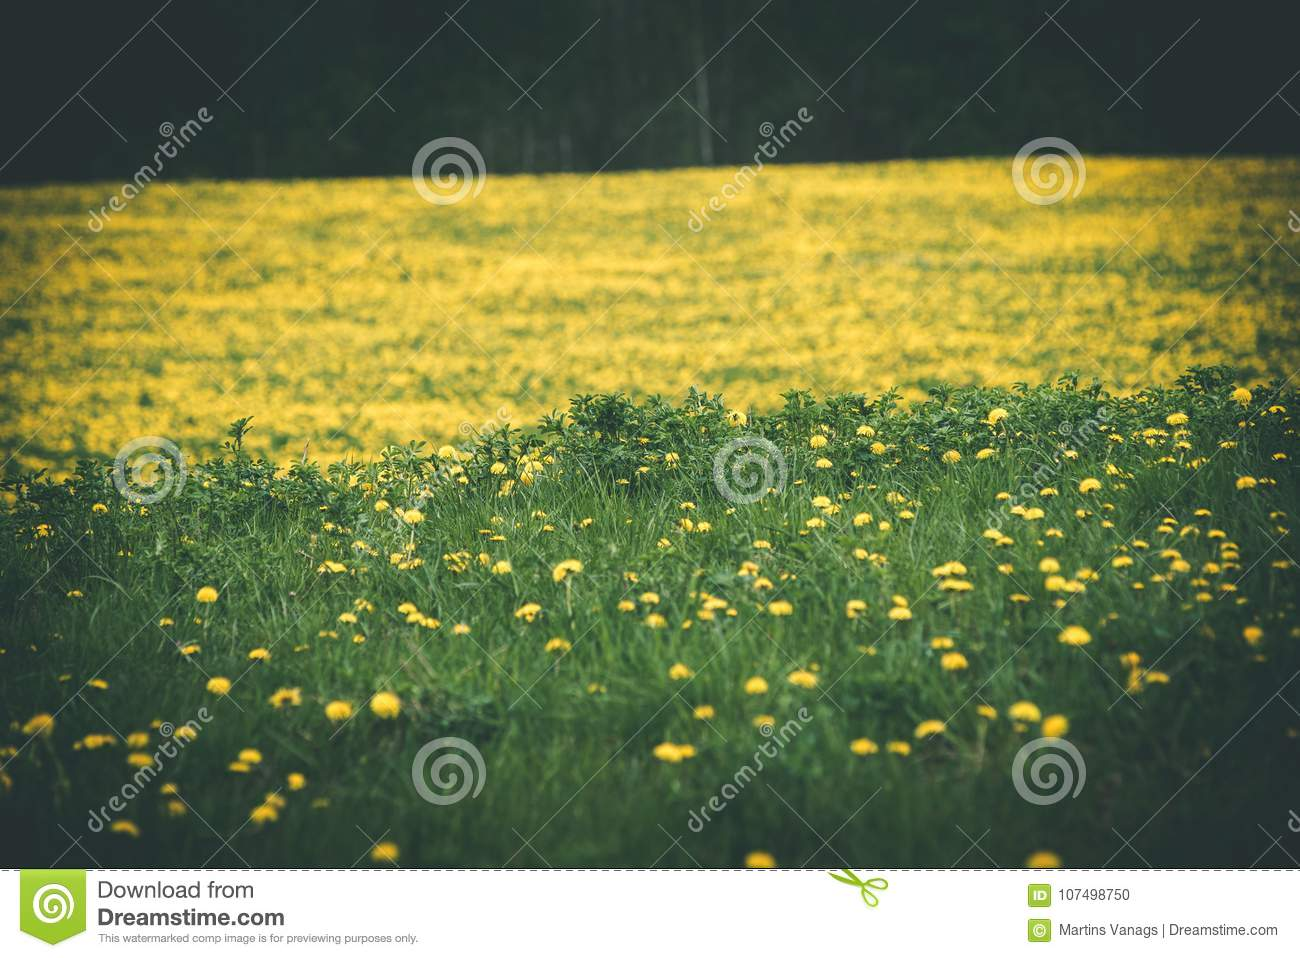 yellow flowers on the green grass full movie download